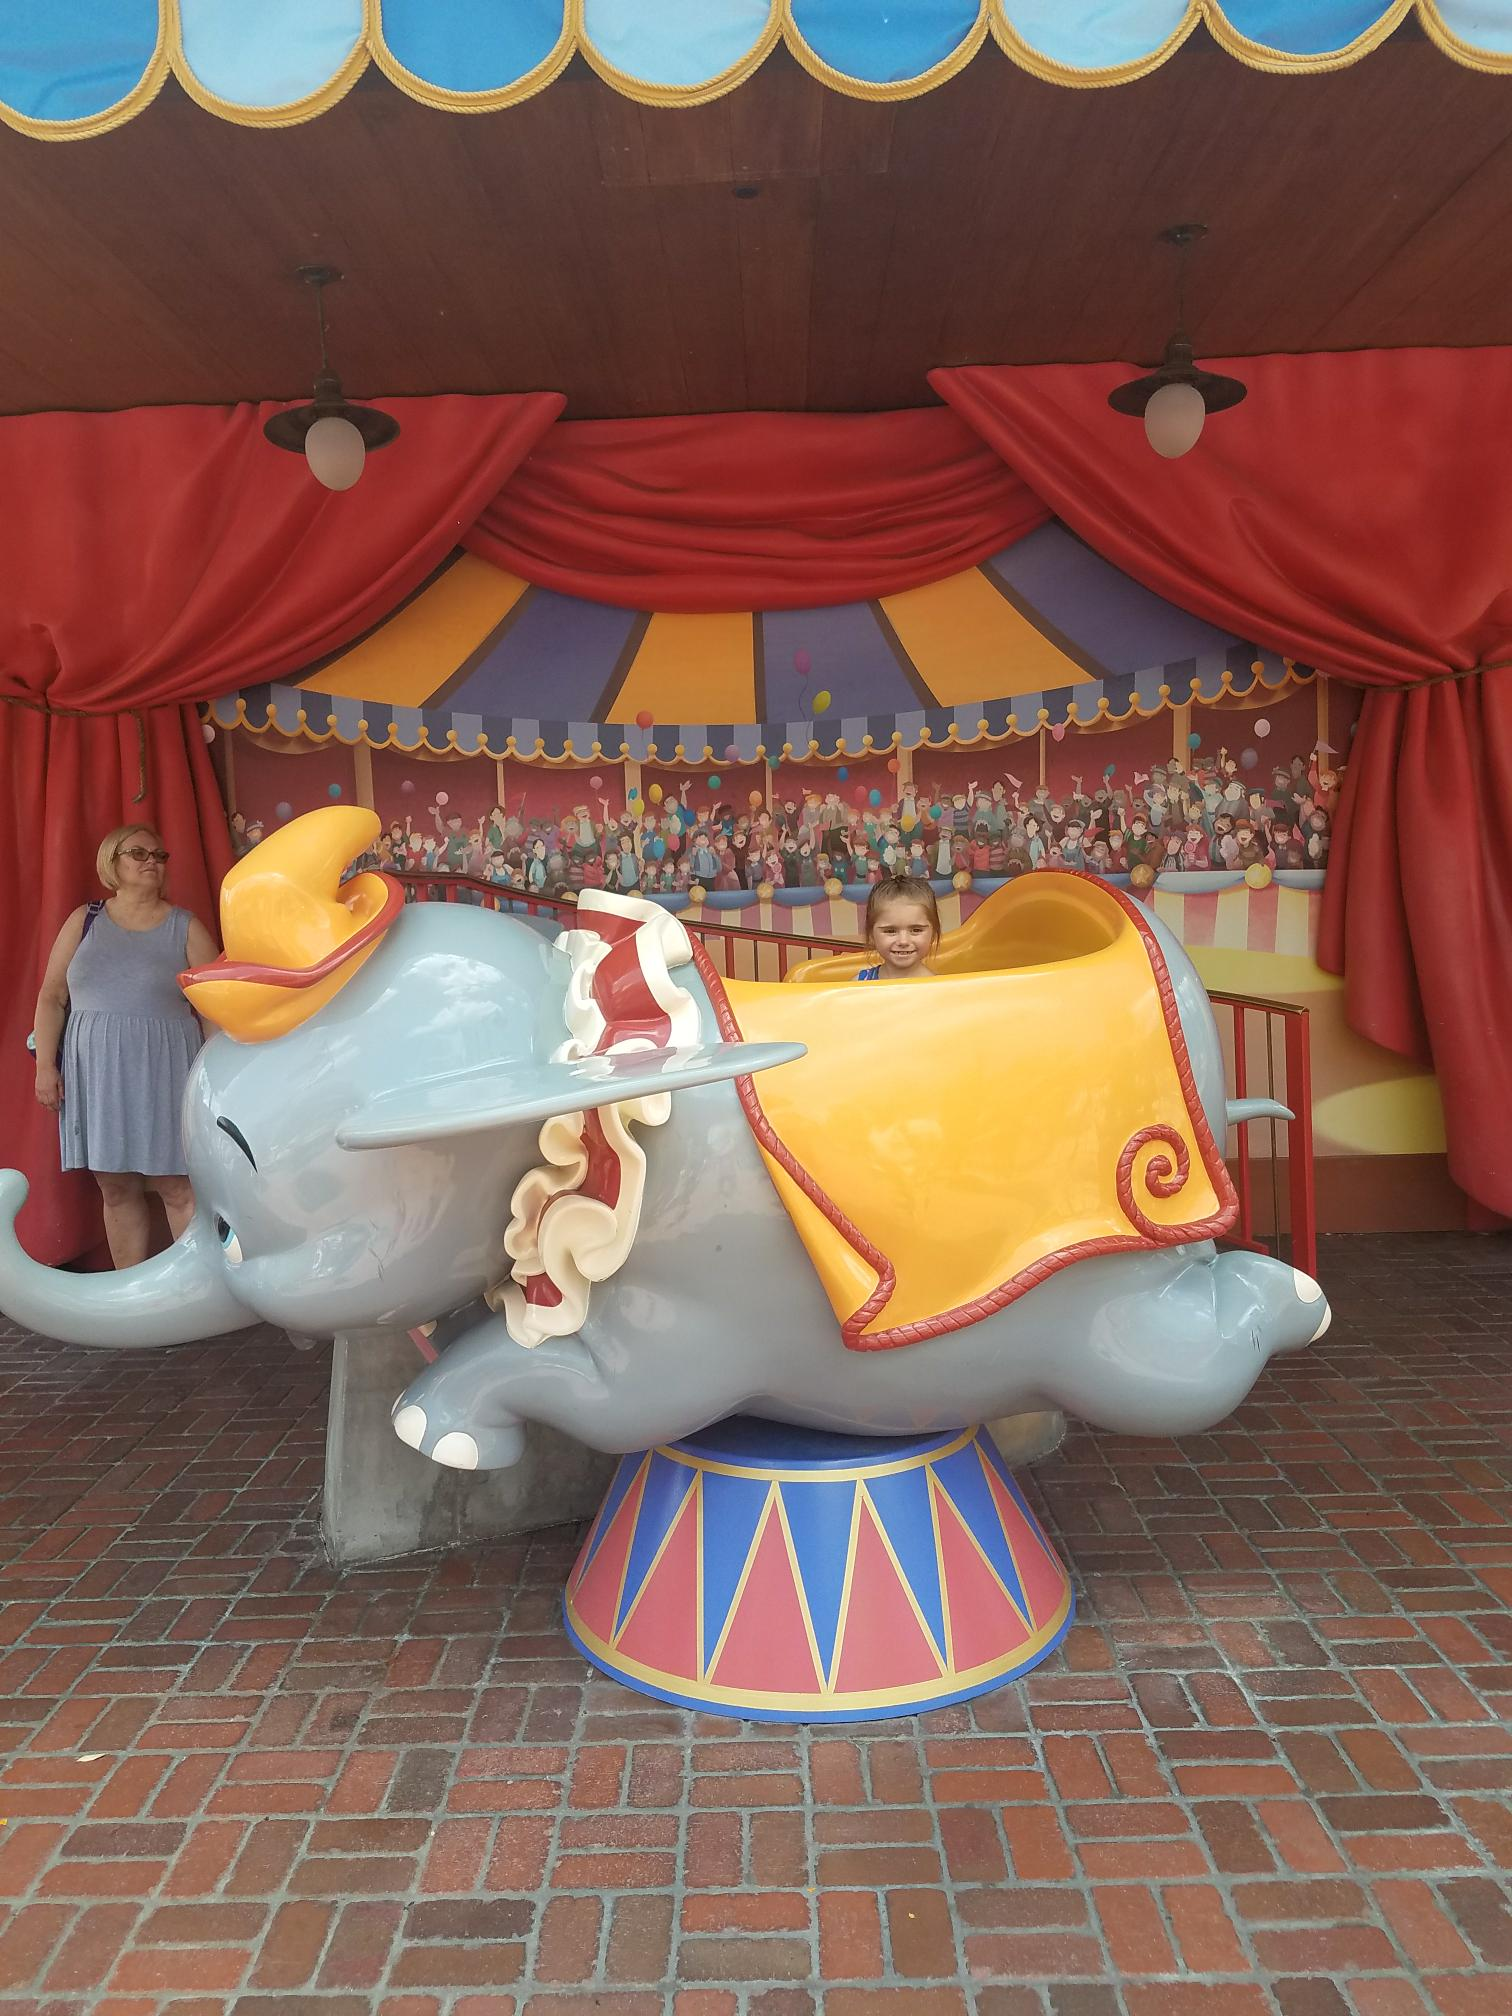 Dumbo the Flying Elephant in Storybook Circus includes a fun area for kids, and a chance to take a photo with Dumbo